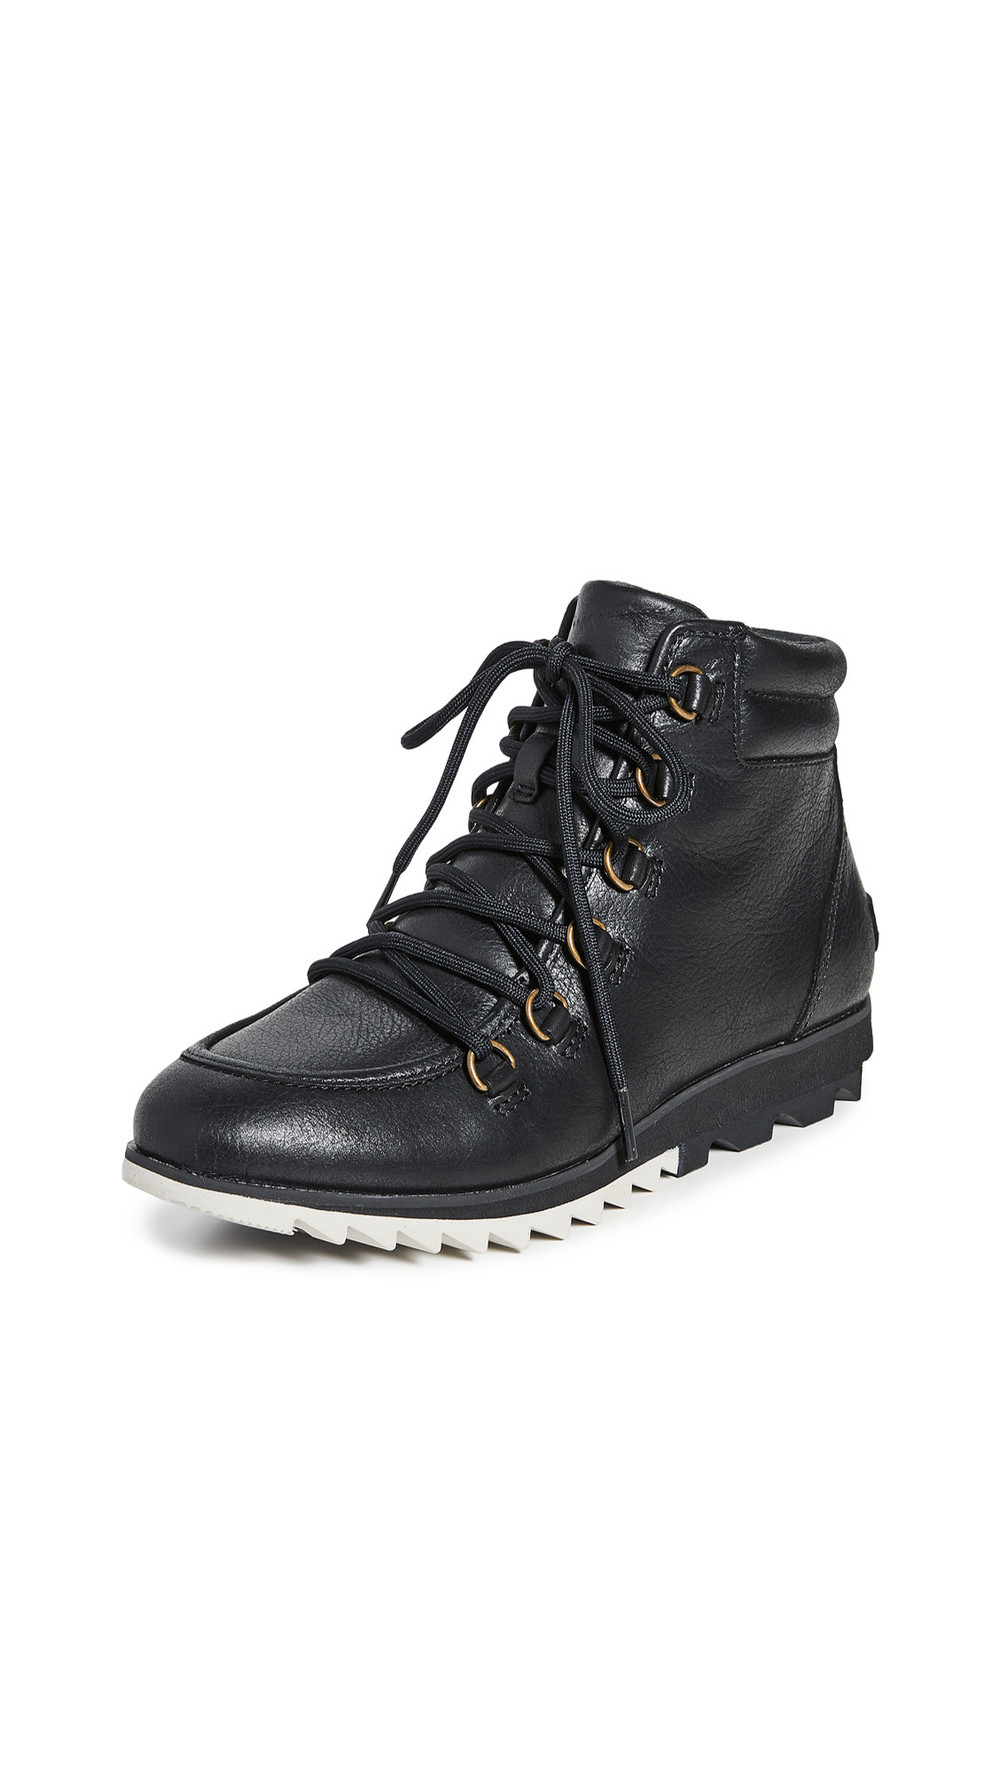 Sorel Harlow Lace Up Booties in black